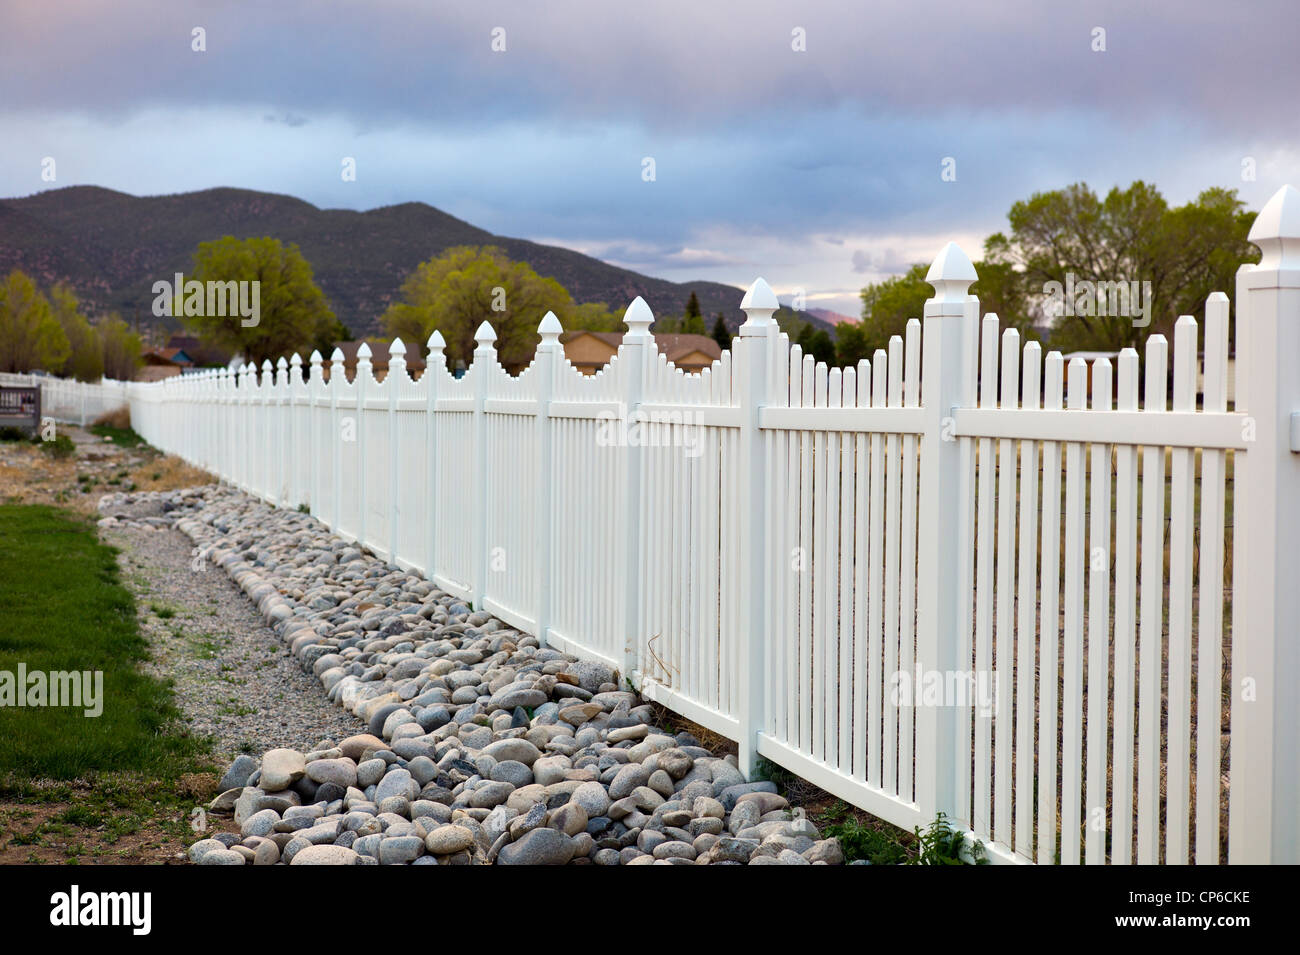 White vinyl fence surrounds Craftsman Style residential homes in Colorado, USA - Stock Image